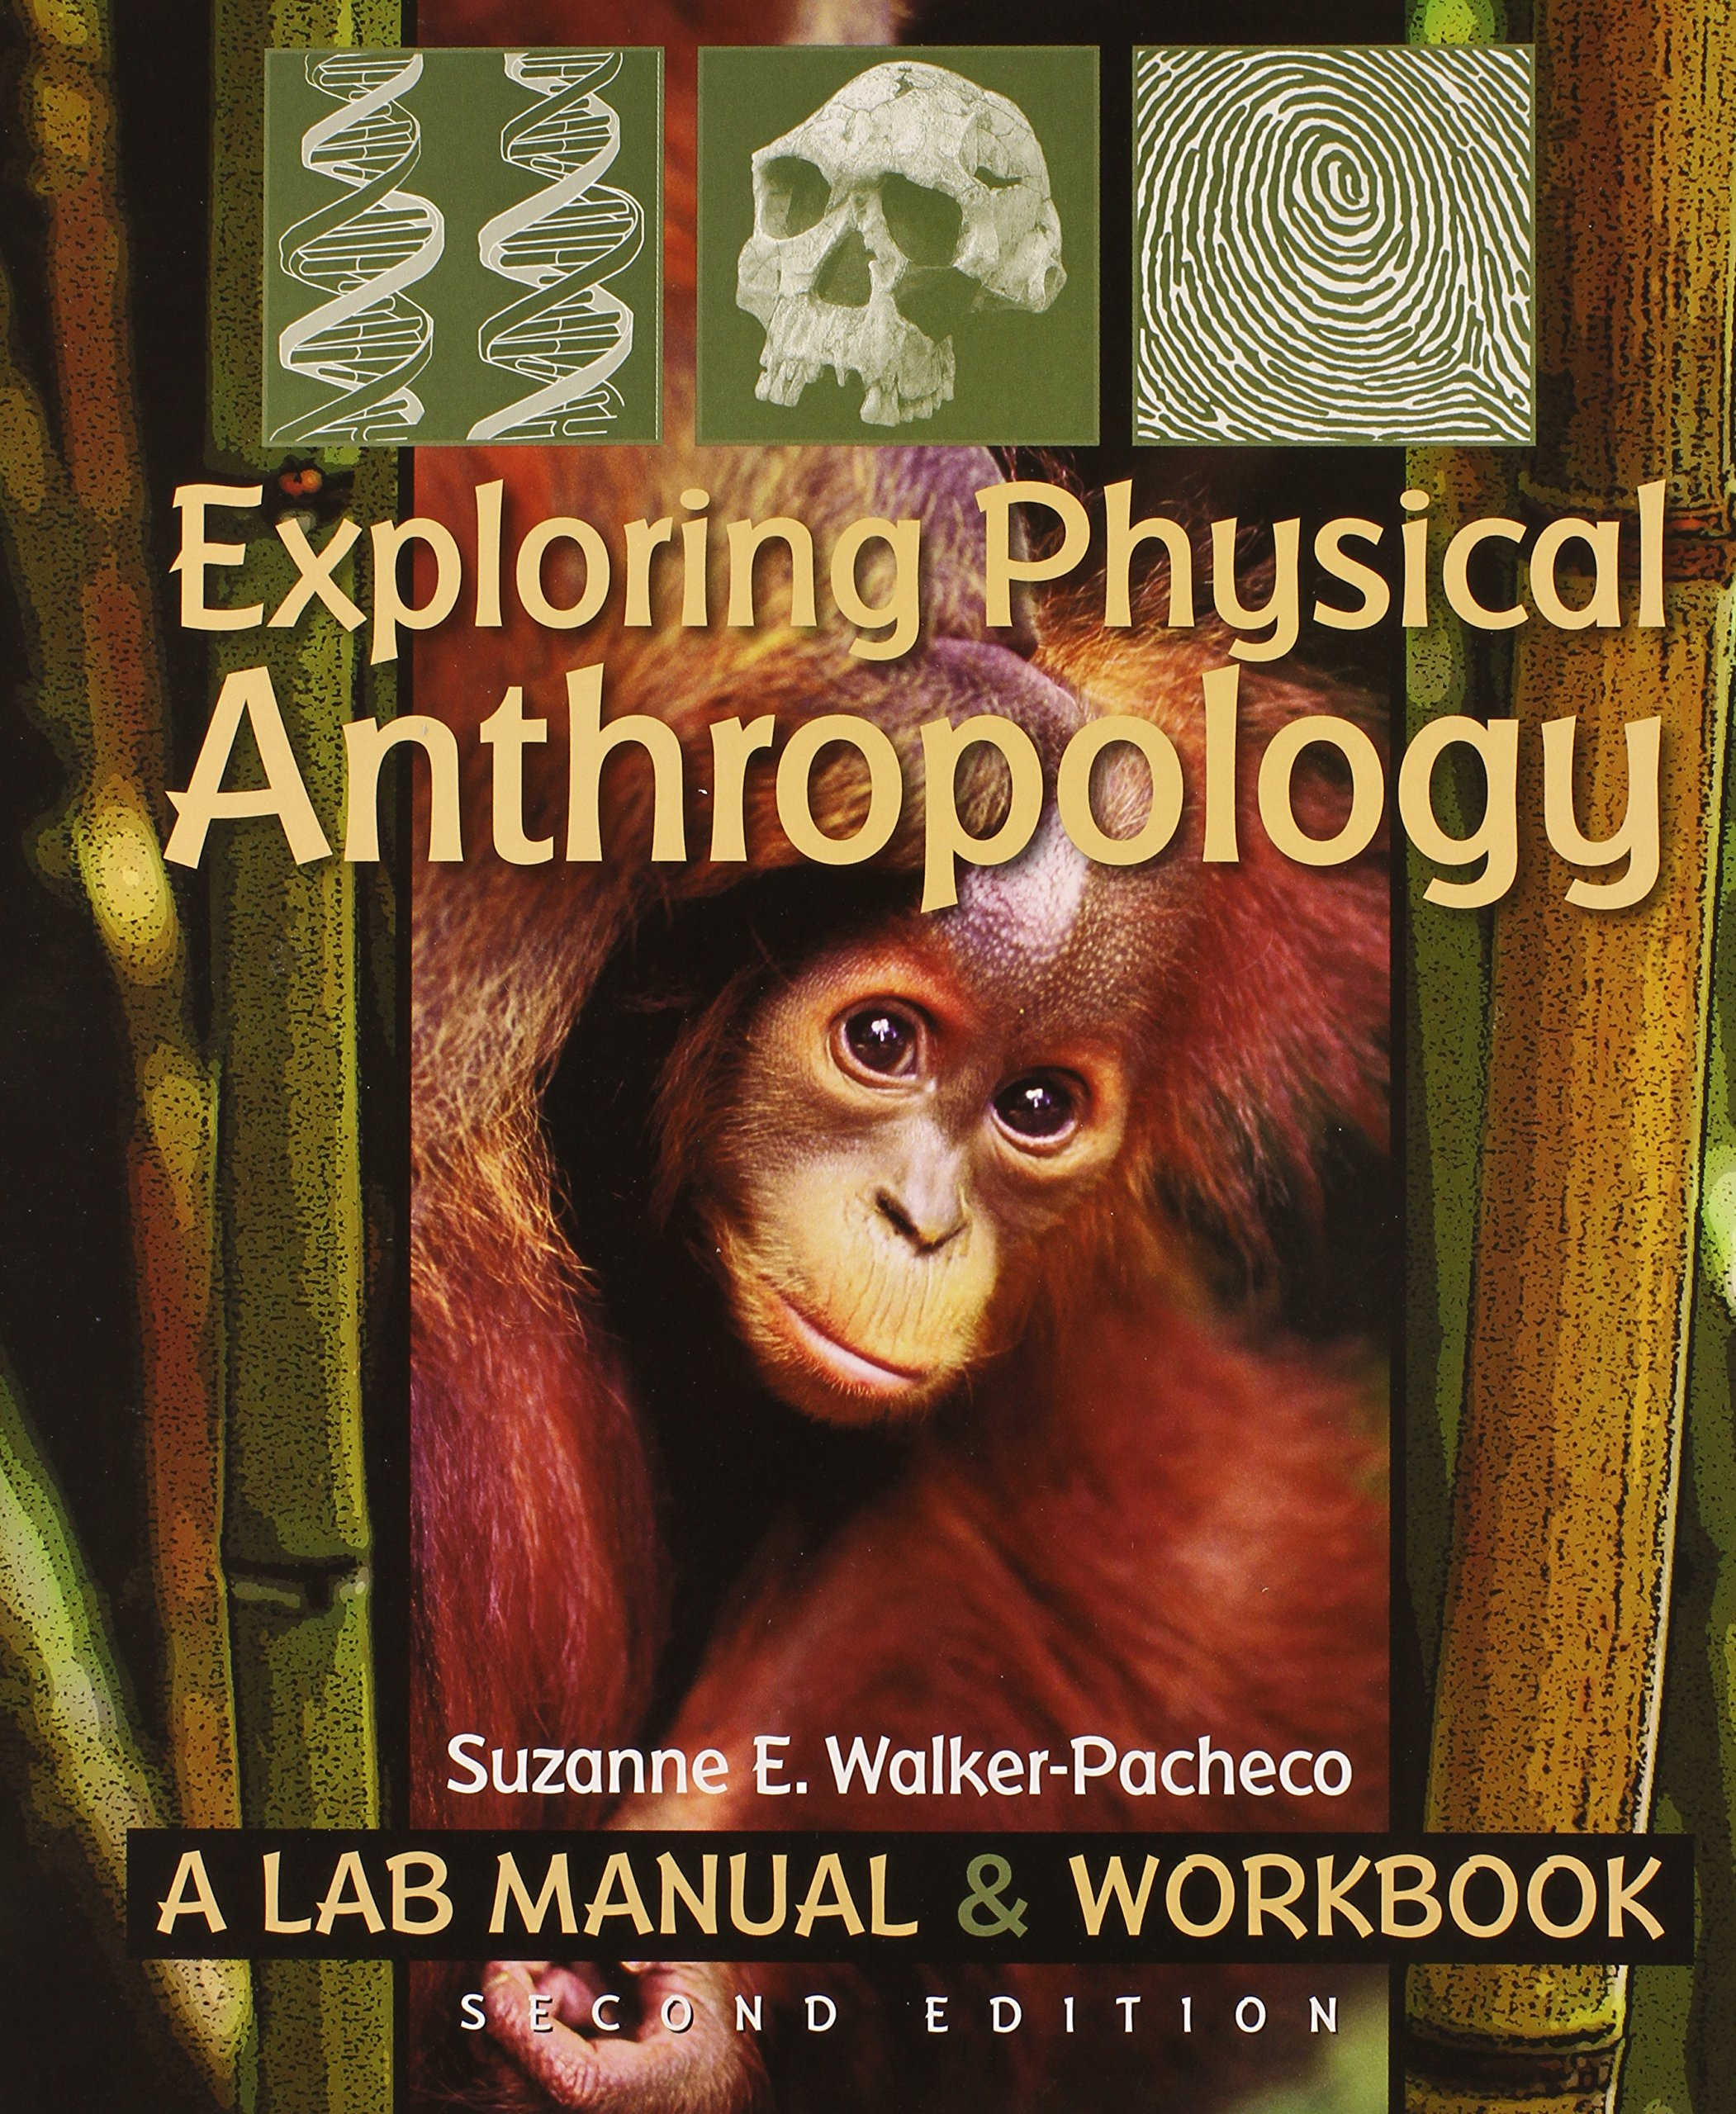 Exploring Physical Anthropology: A Lab Manual and Workbook: Amazon.co.uk:  Suzanne E. Walker-Pacheco: 9780895828118: Books